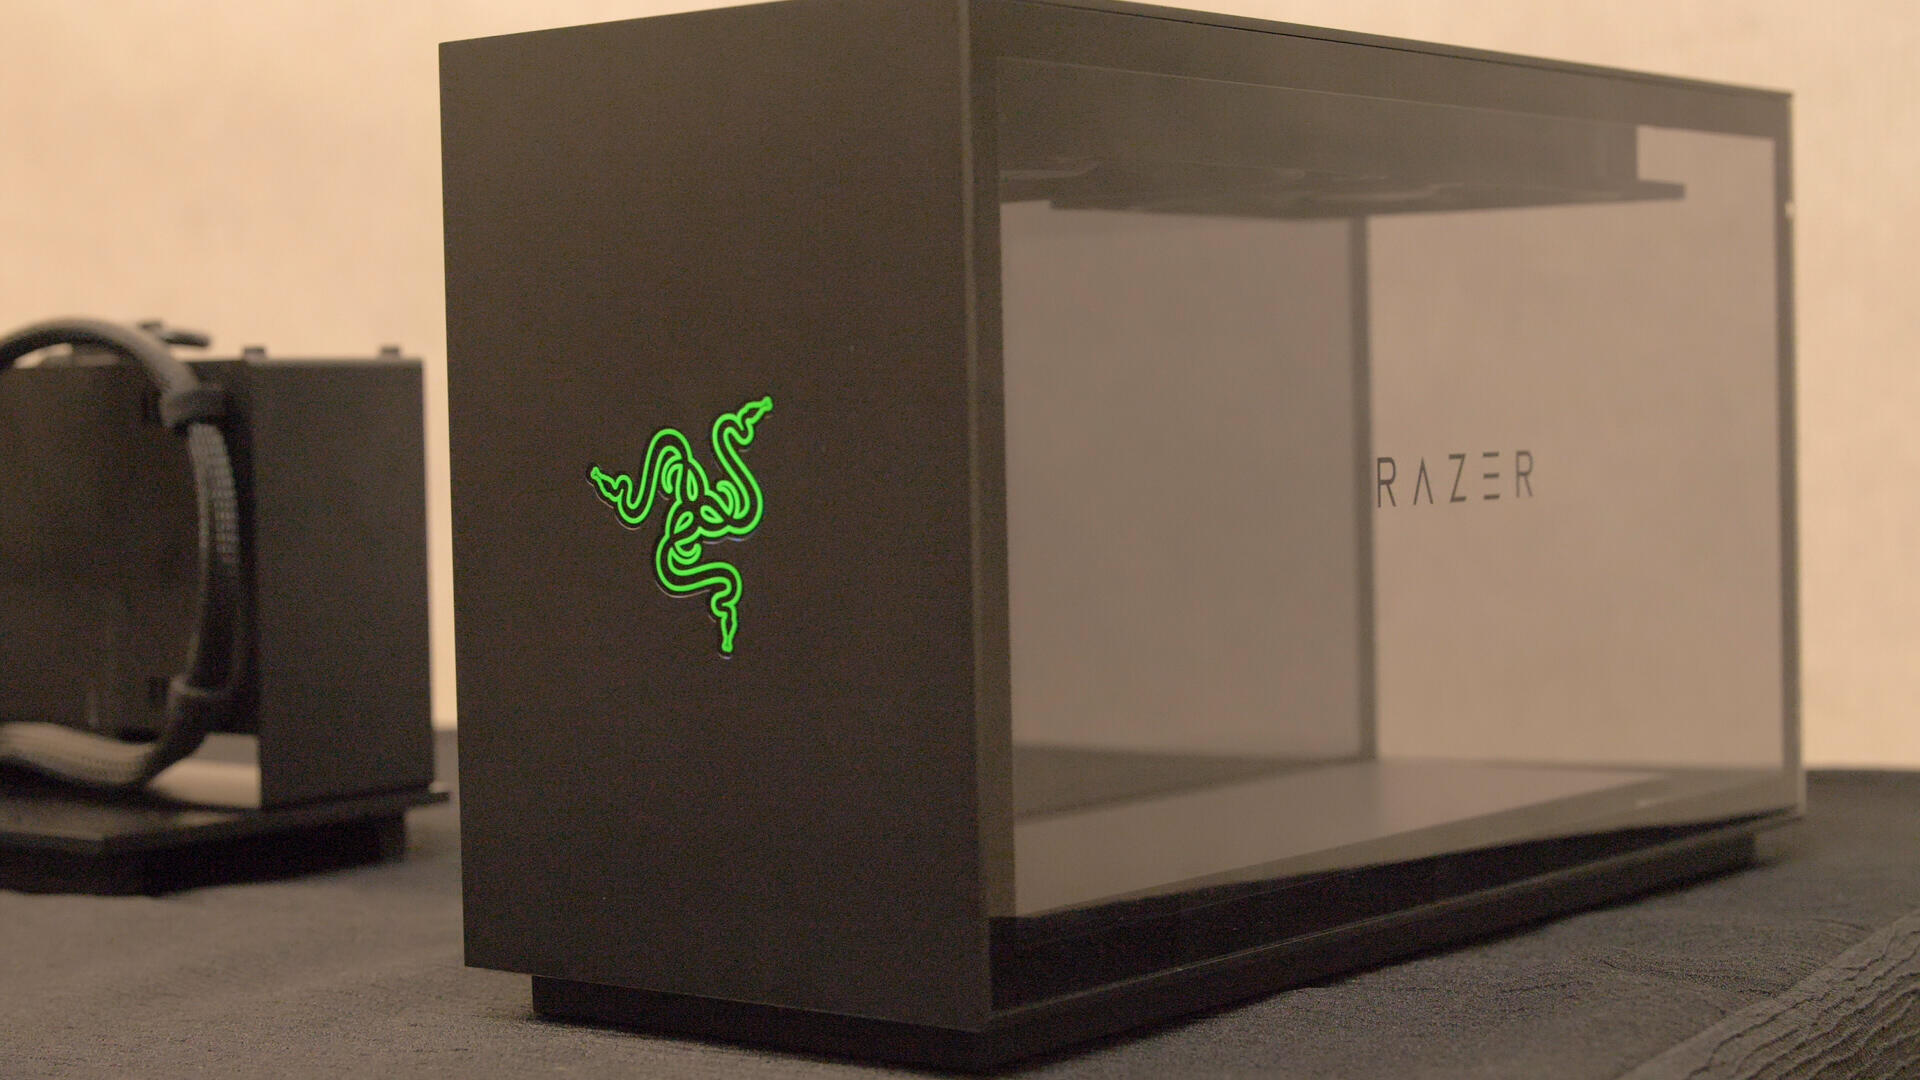 Video: Razer Tomahawk is the modular gaming desktop you've been waiting for